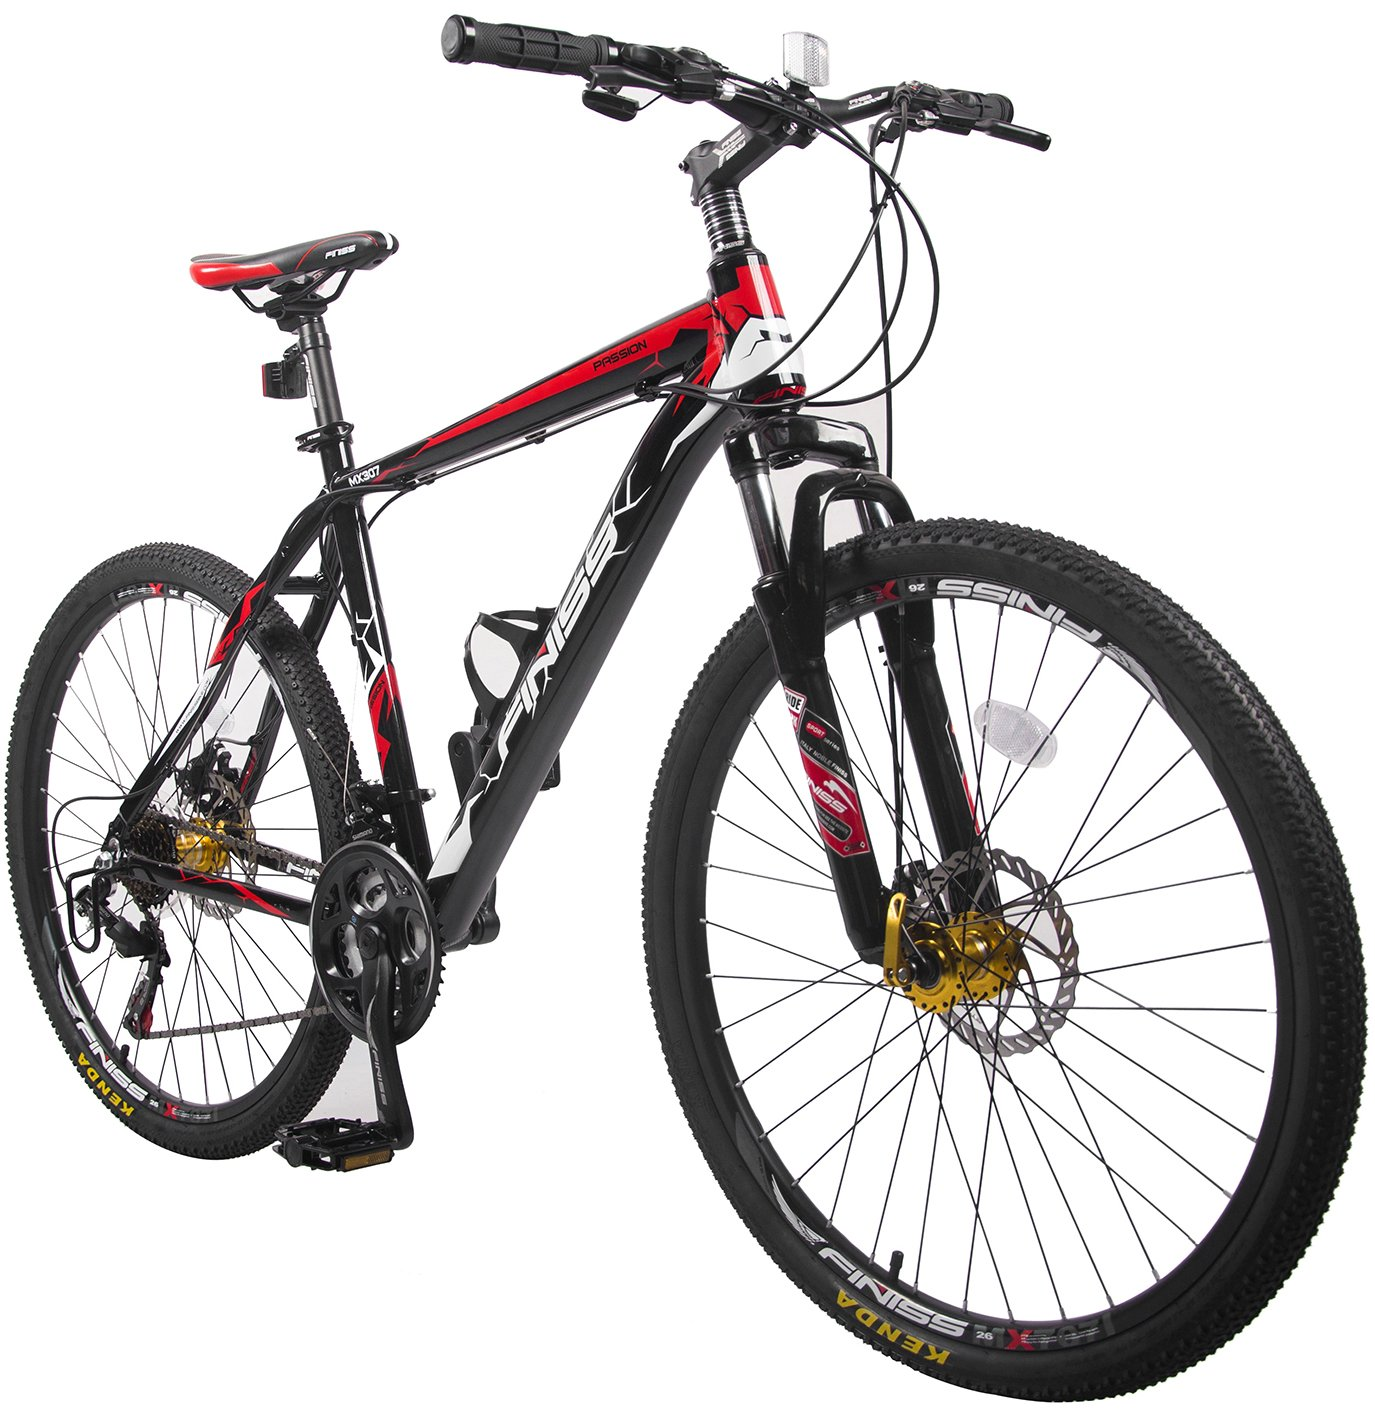 "Merax Finiss 26"" Aluminum 21-speed Mountain Bike with Disc Brakes Reviews"